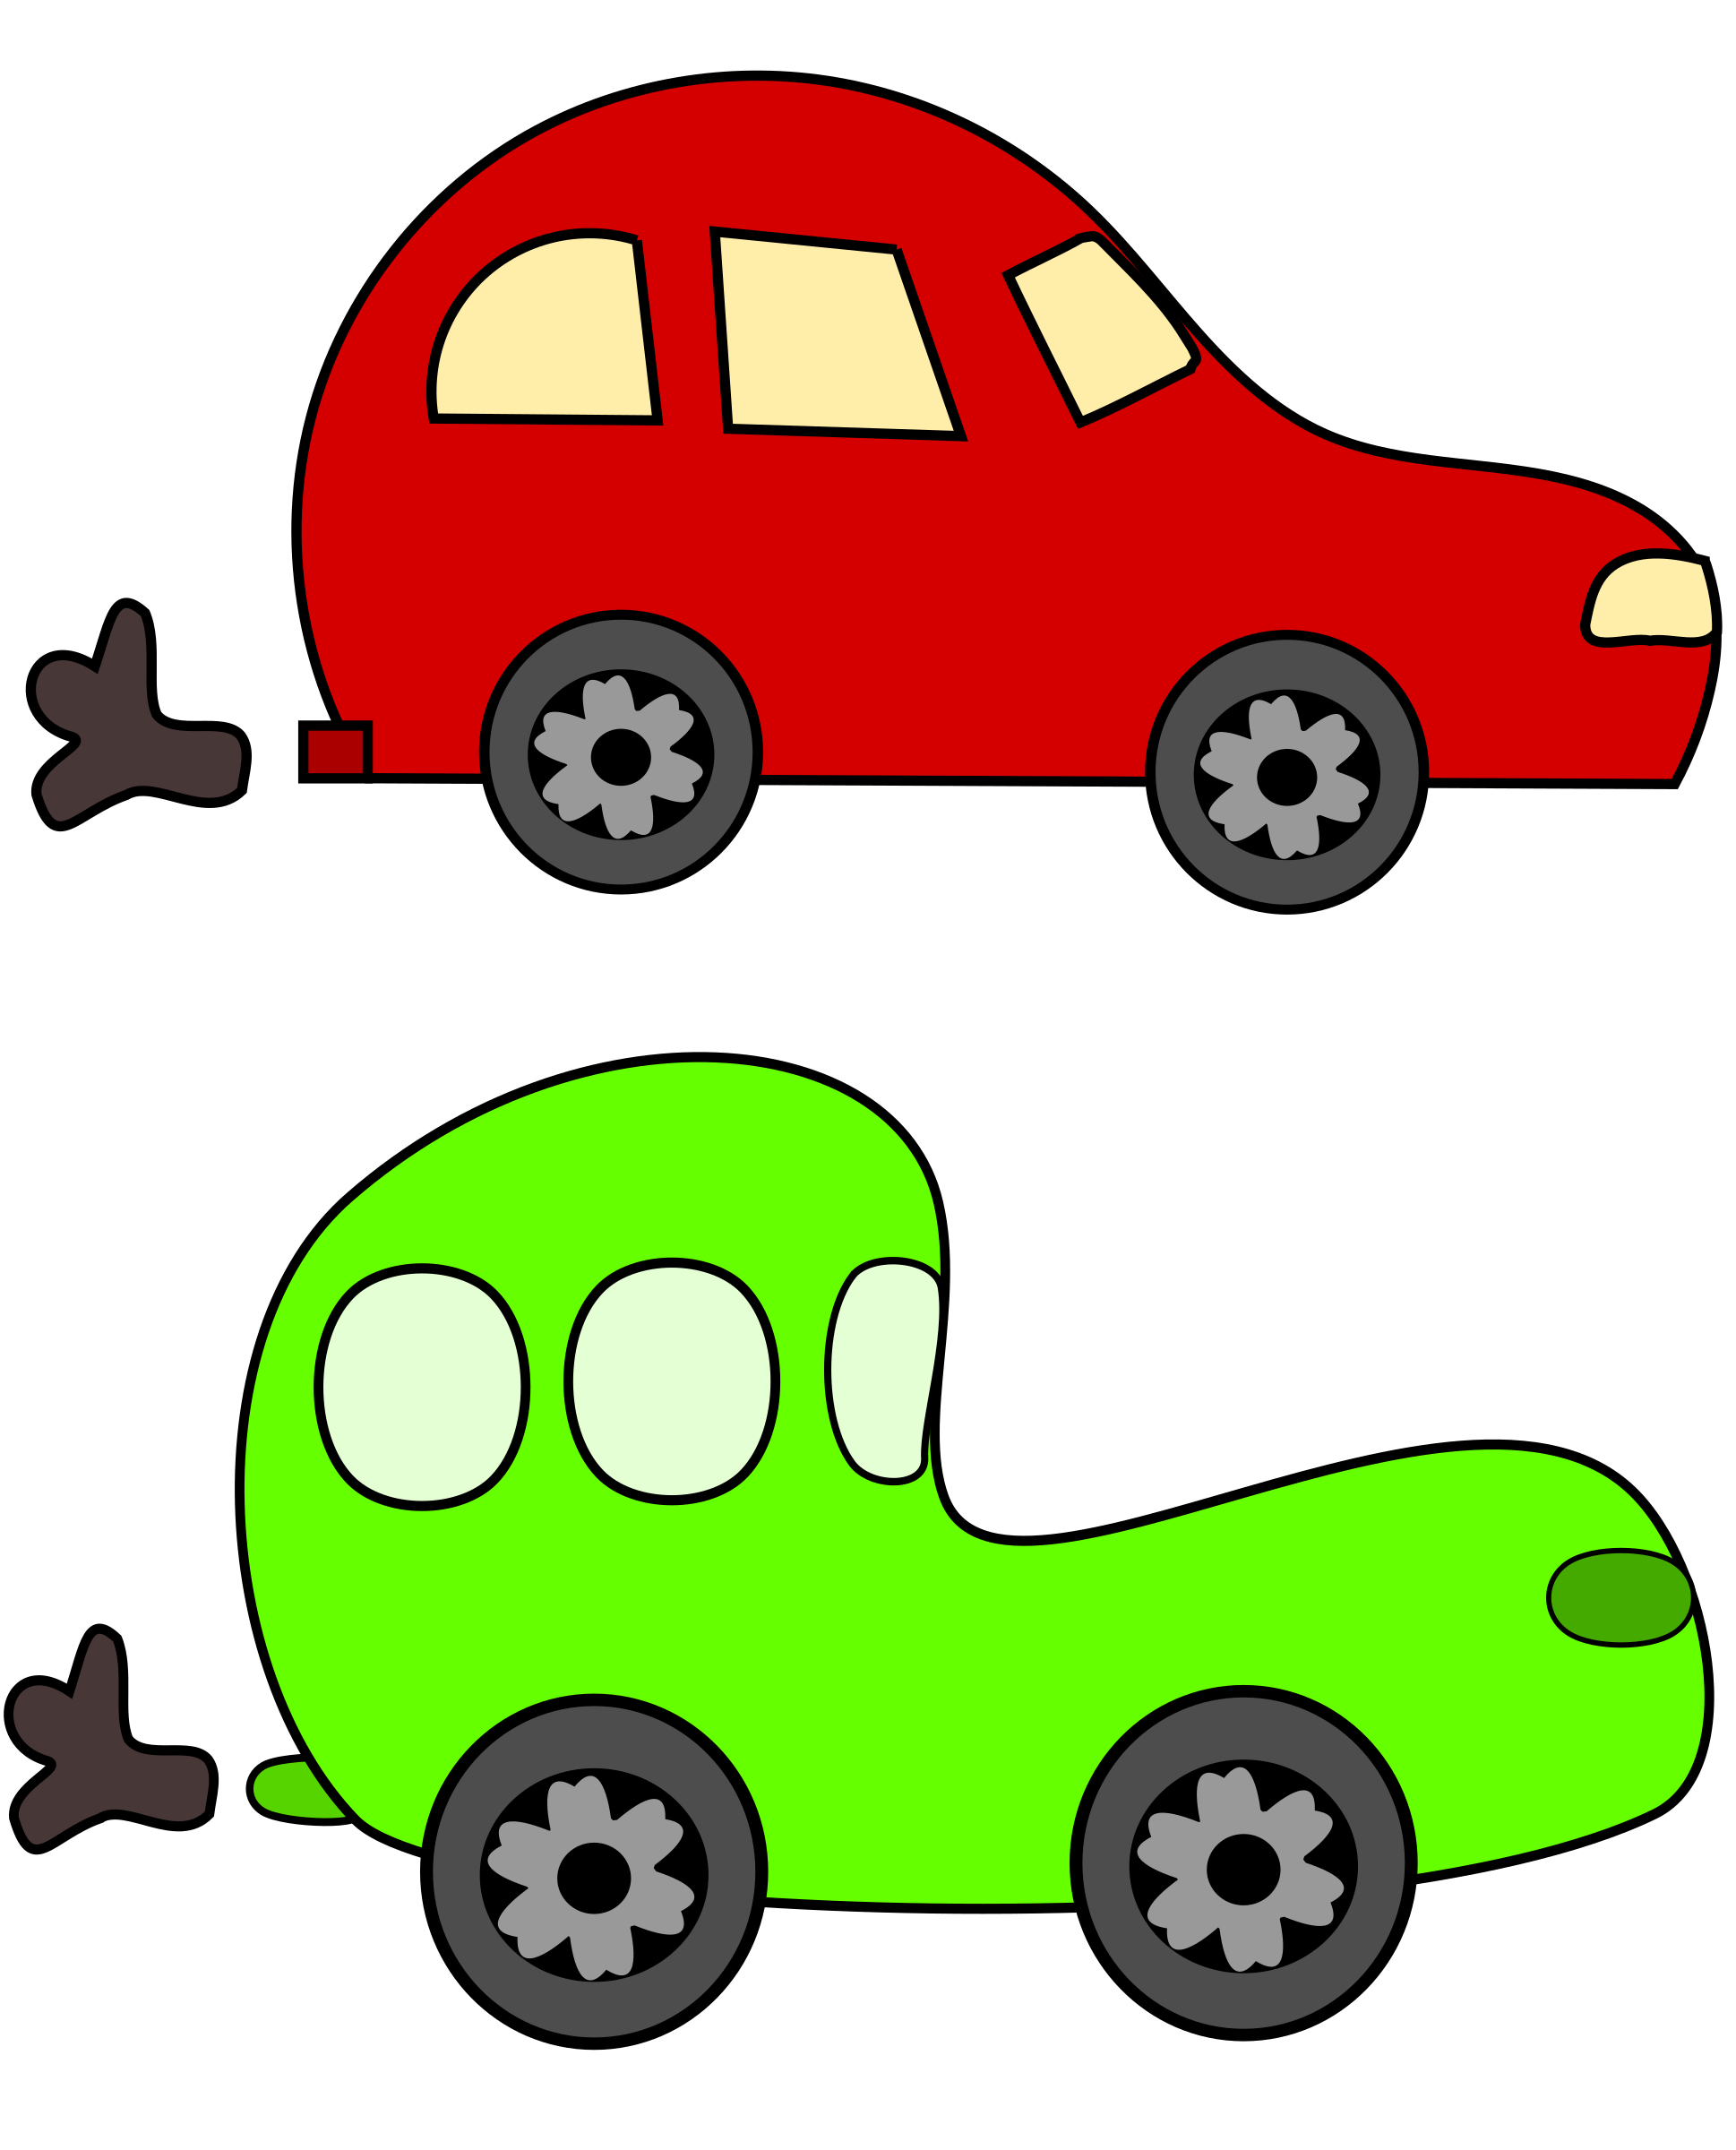 Working on car clipart png black and white library Cartoon Cars Pictures Image Group (35+) png black and white library